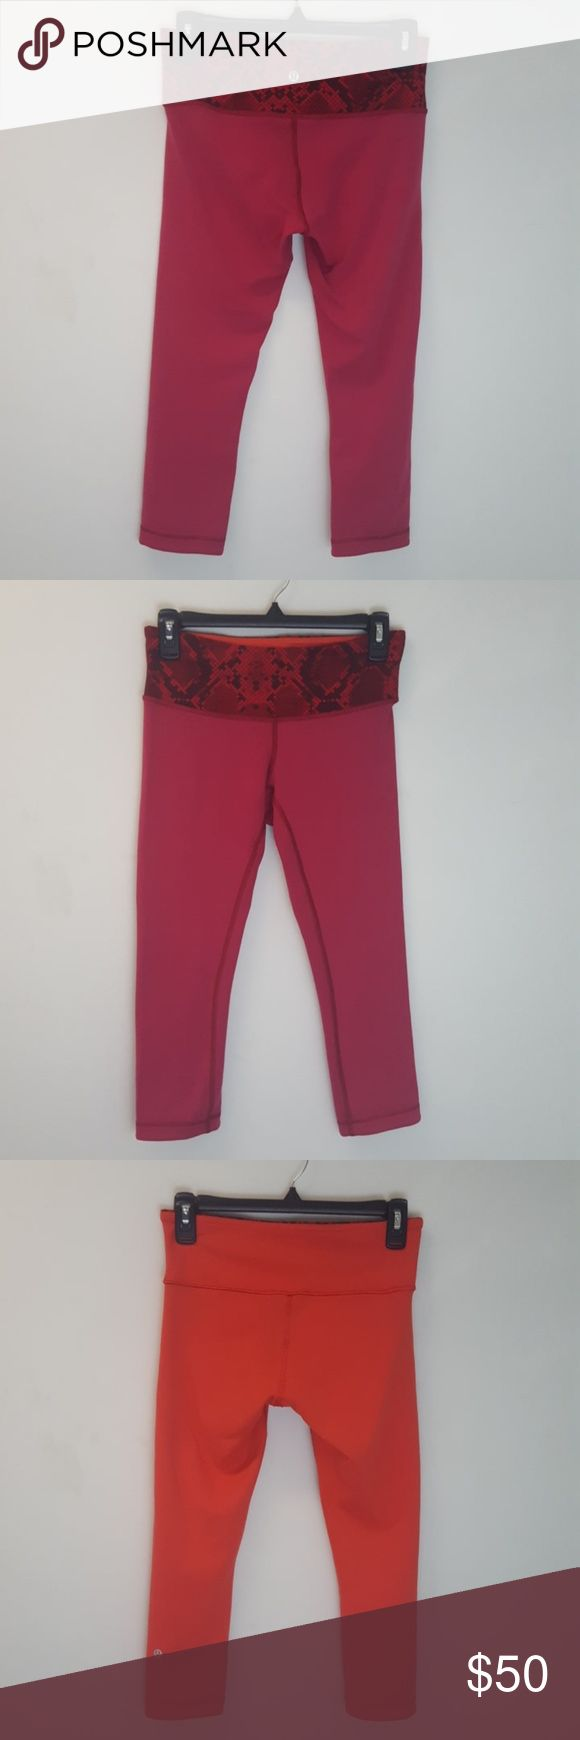 Lululemon Red Reversible Wunder Under Crop III RVS Wunder Under cropped leggings from lululemon! Red with snakeskin print waistband, and reversible to a light orange! Size 6! Slight wear/piling on red side thigh area. No rips or stains!  These no fuss, reversible crops were designed to fit like a second skin. Perfect for casual wear or to the gym! Luon fabric is sweat wicking and four way stretch! Tuck away small necessities in the hidden waistband pocket Medium rise, comfy and hugged…